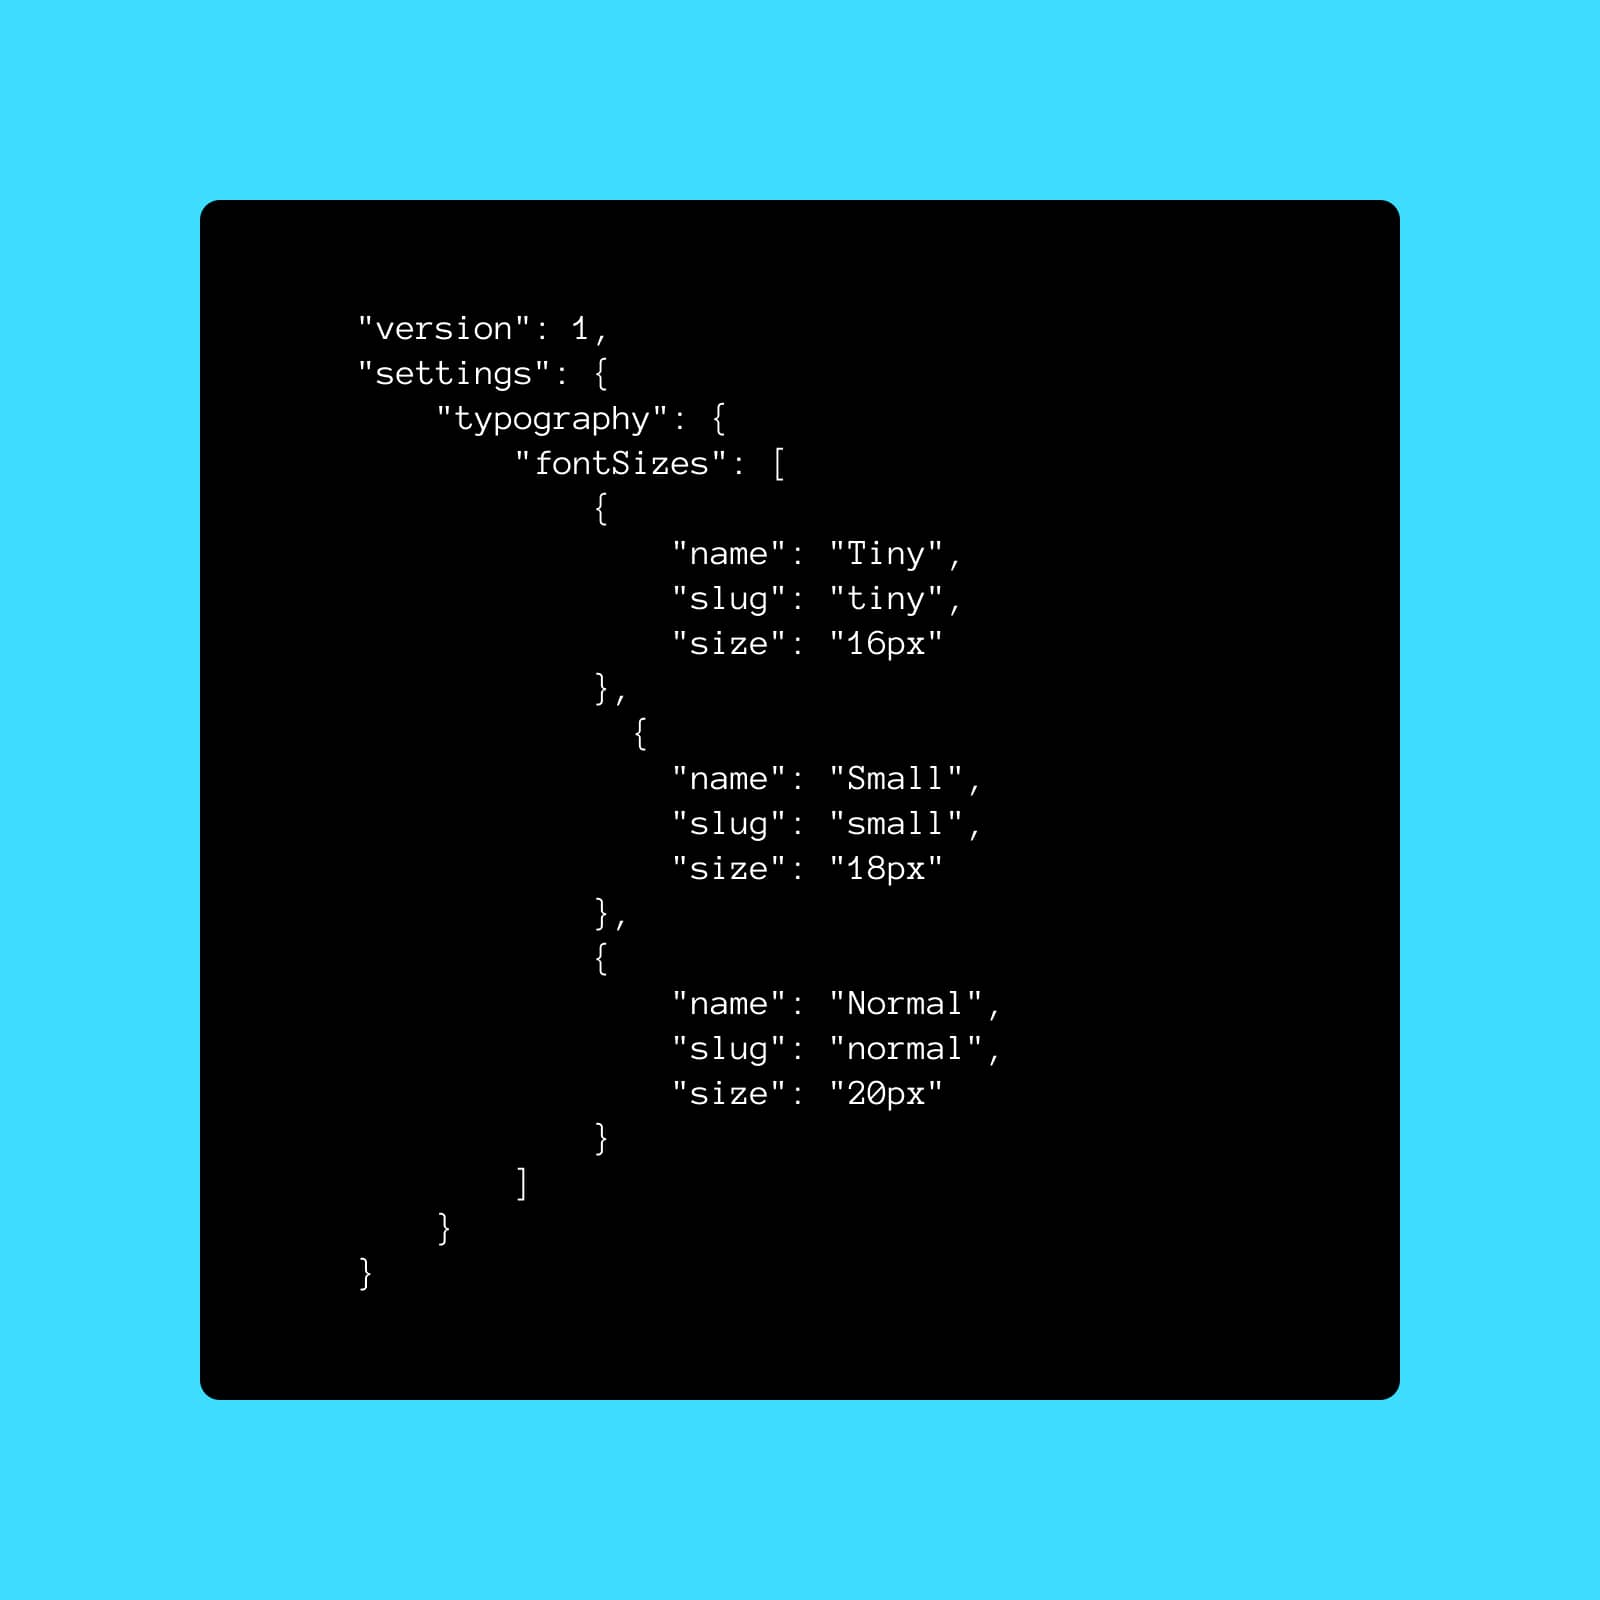 Theme.json and Font Sizes